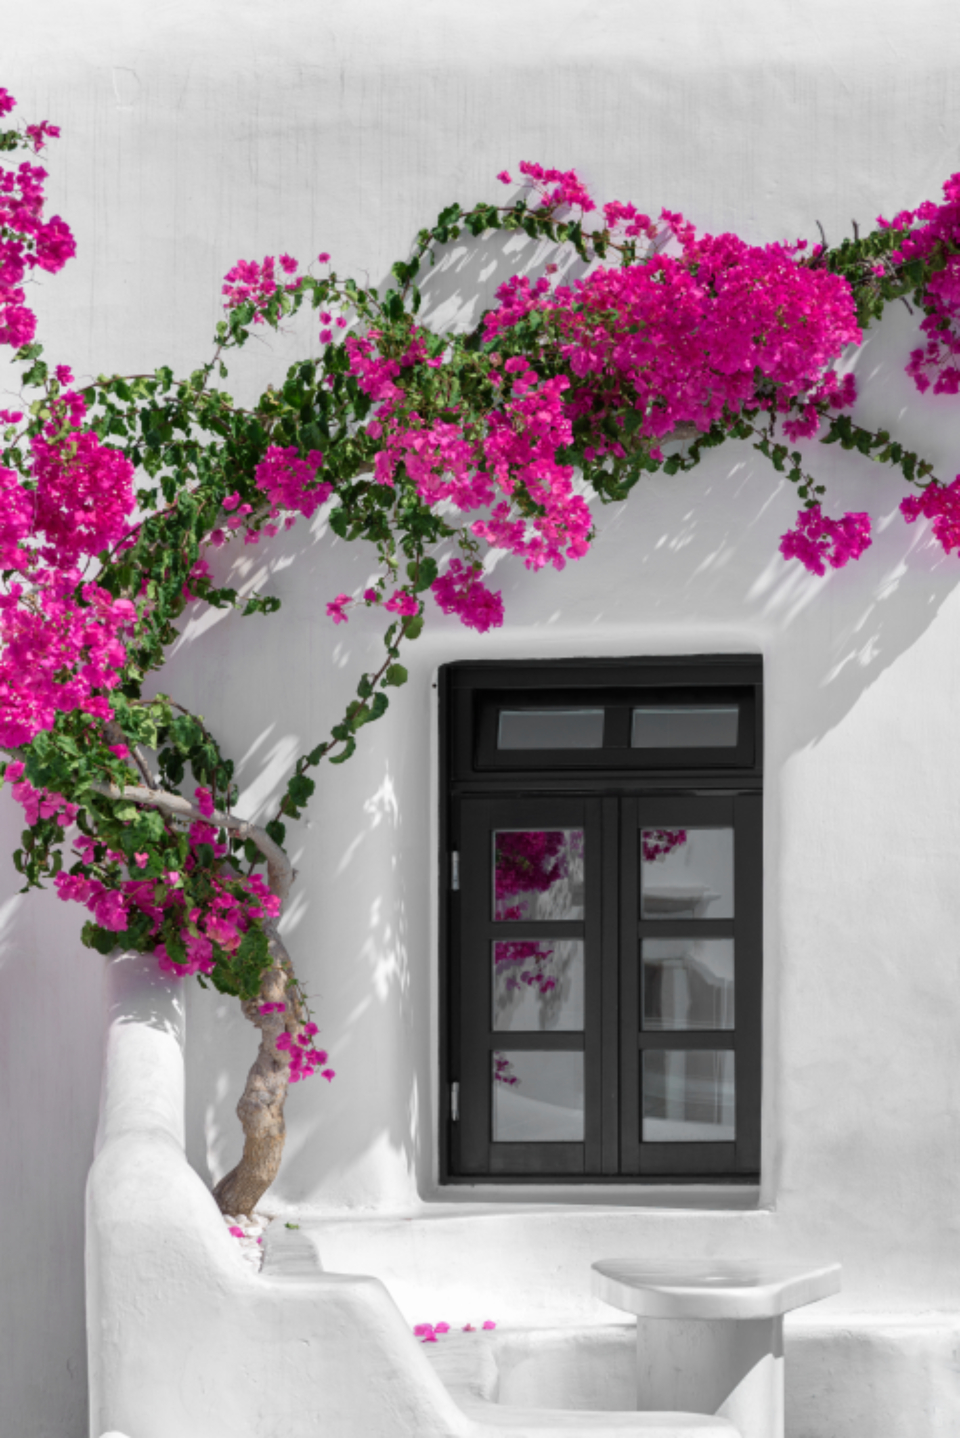 vacation resort window travel simple minimal exterior pretty elegant flowers summer warm relax leisure